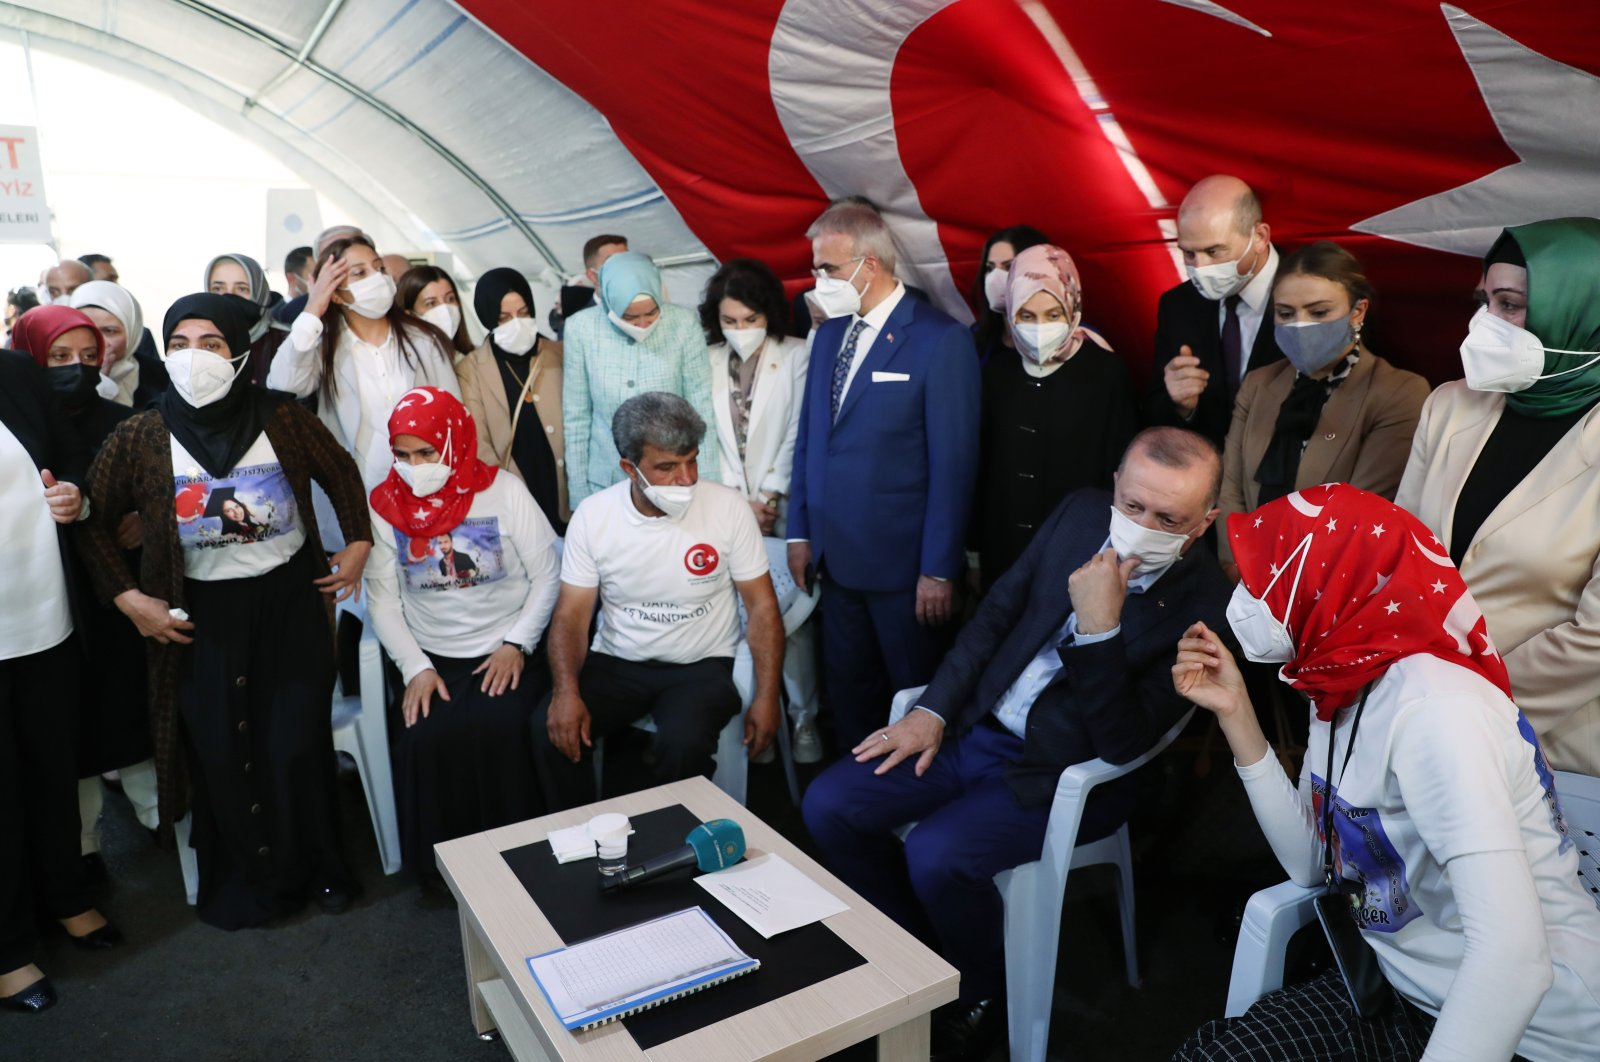 President Recep Tayyip Erdoğan visits families who have been staging a sit-in protest against the PKK terrorist group in southeastern Diyarbakır province, Turkey, July 9, 2021. (AA Photo)